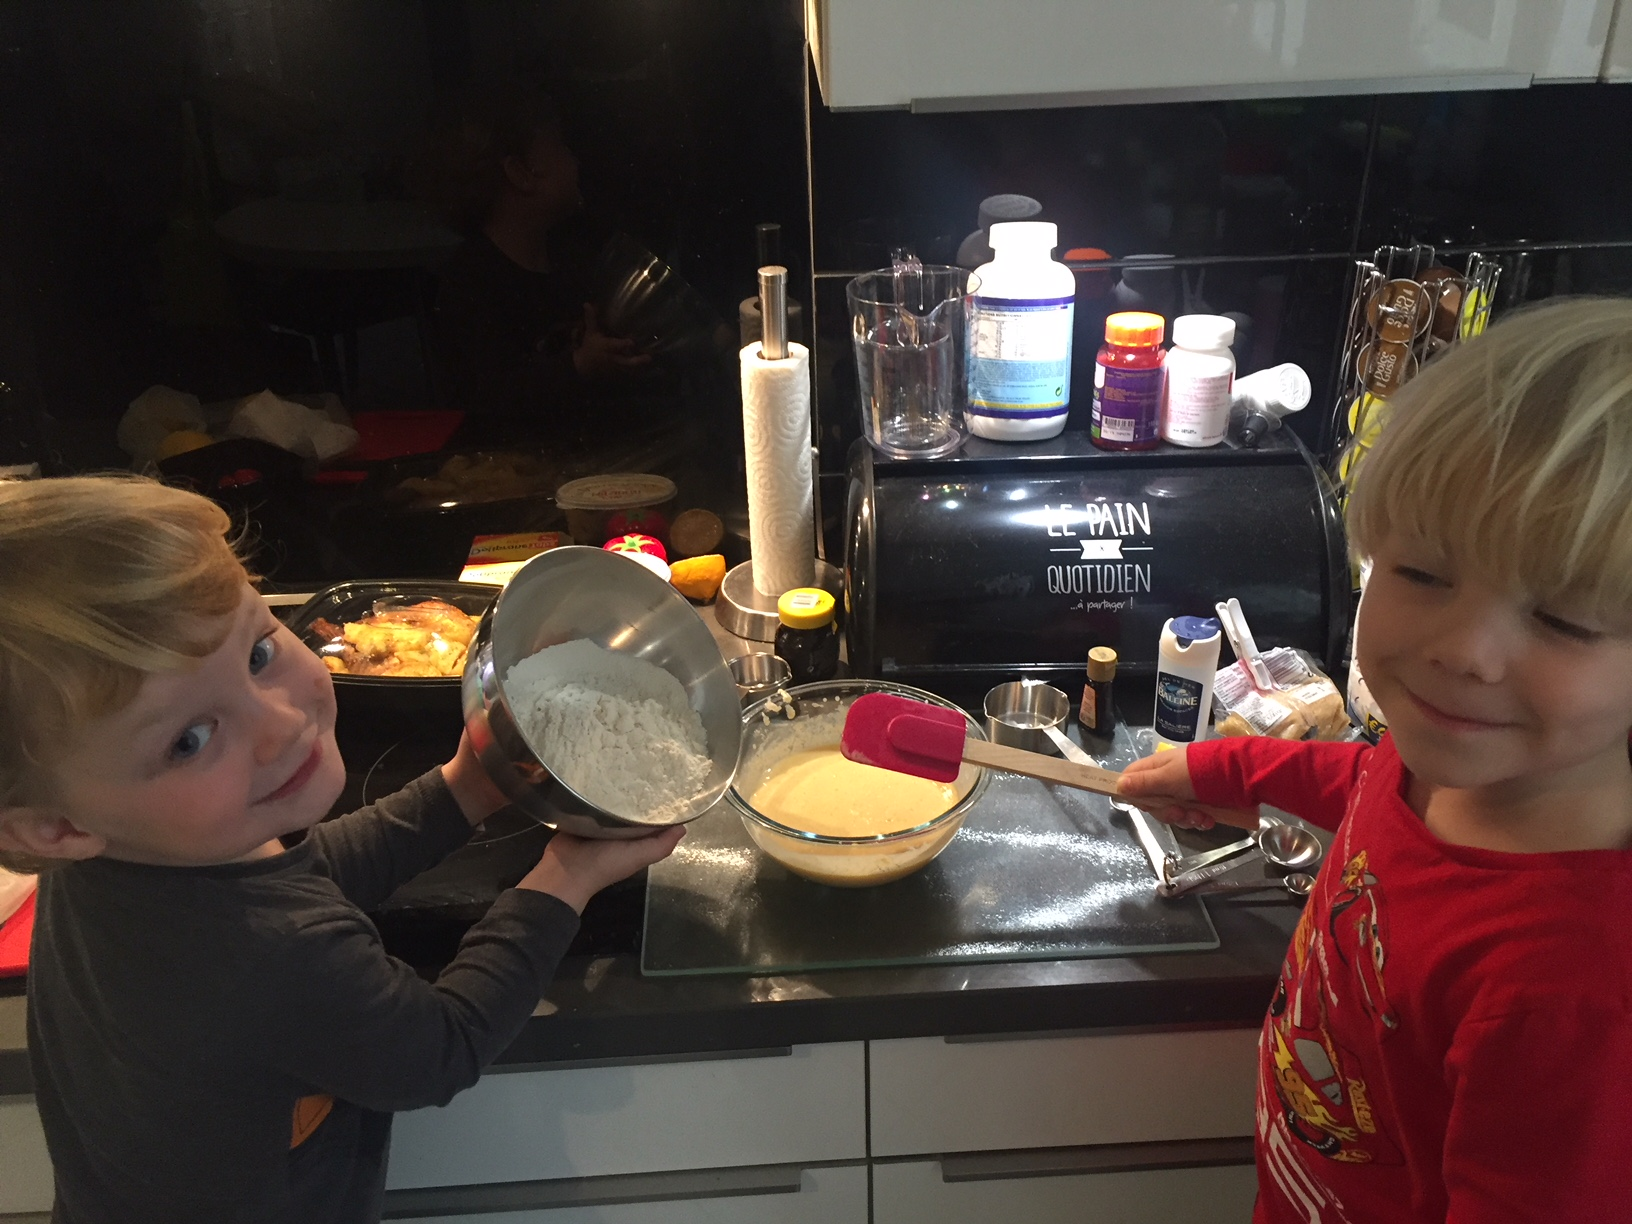 My little bakers